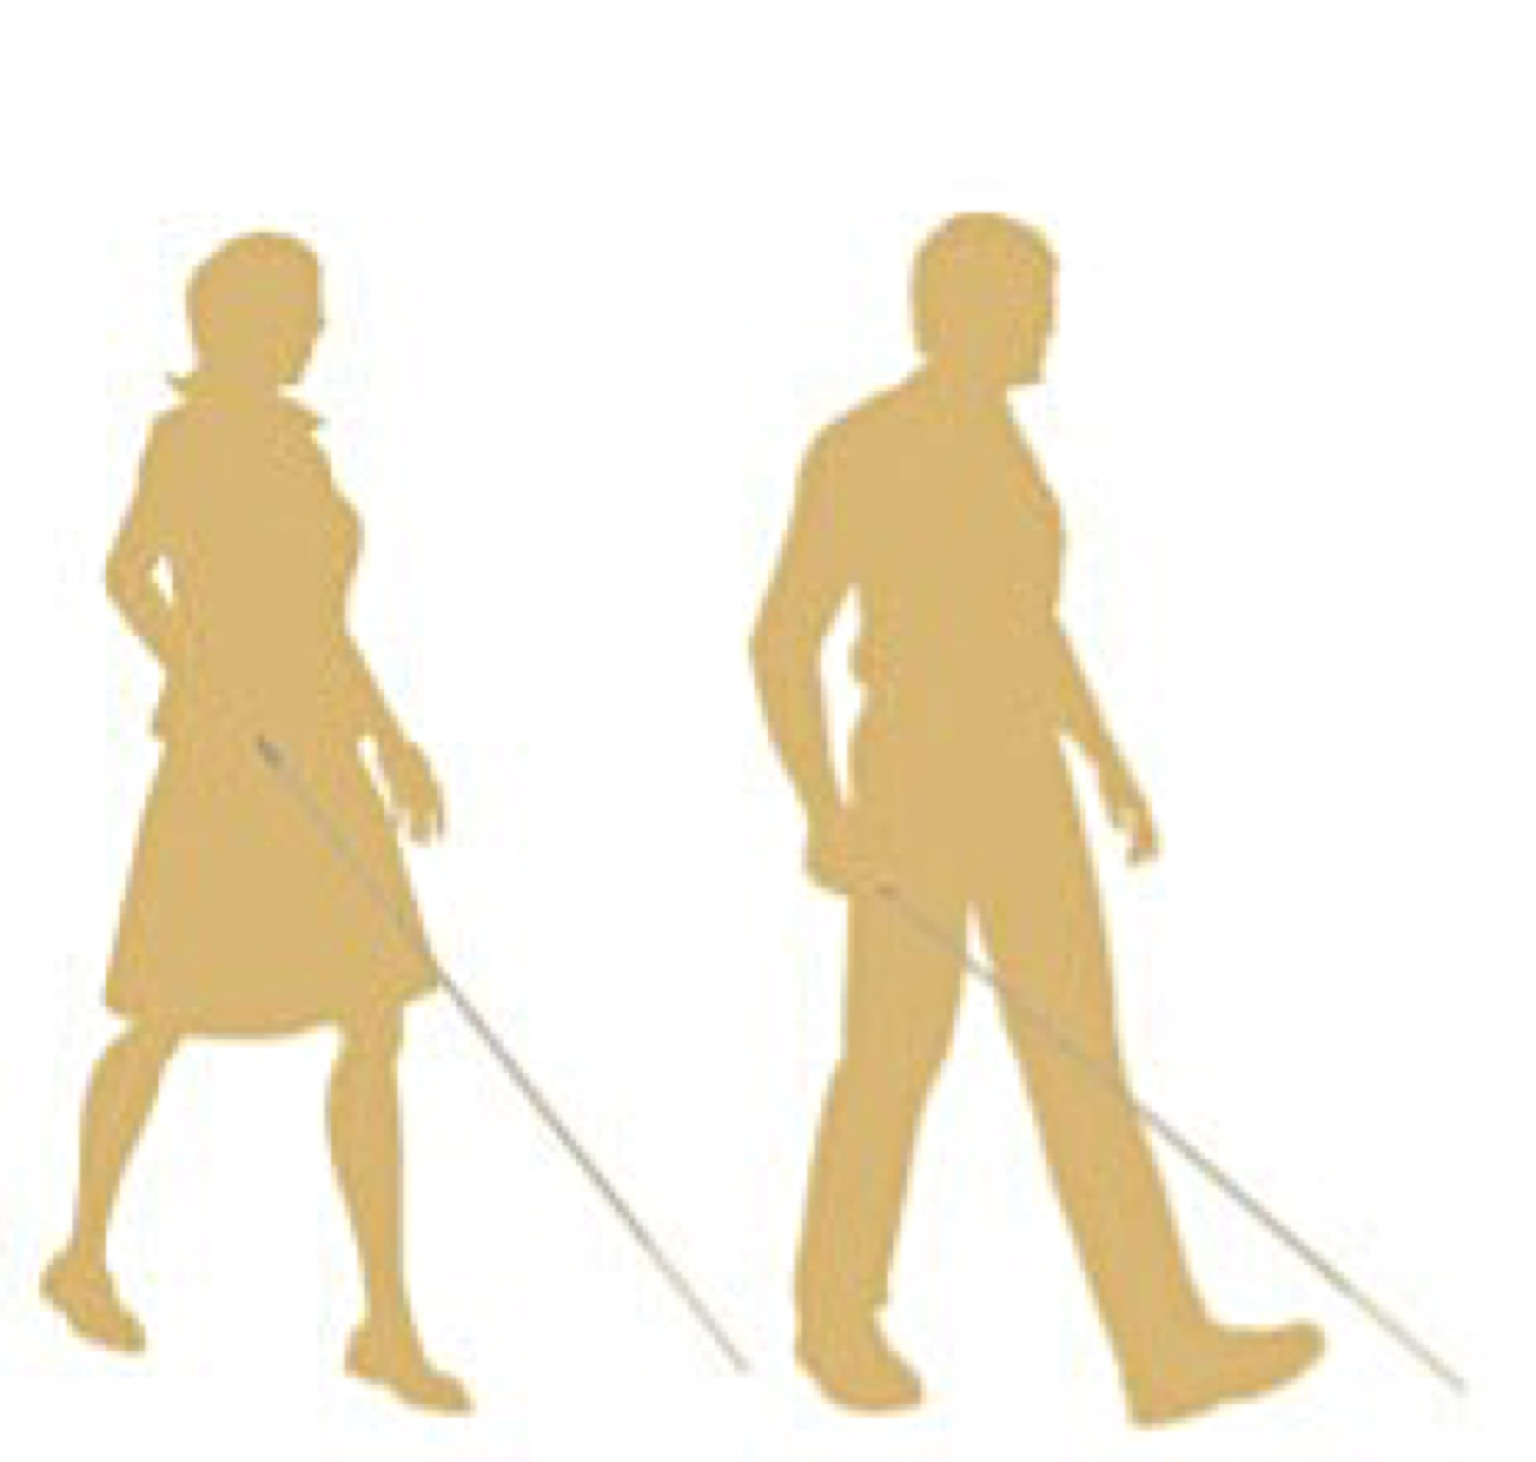 visually impaired persons